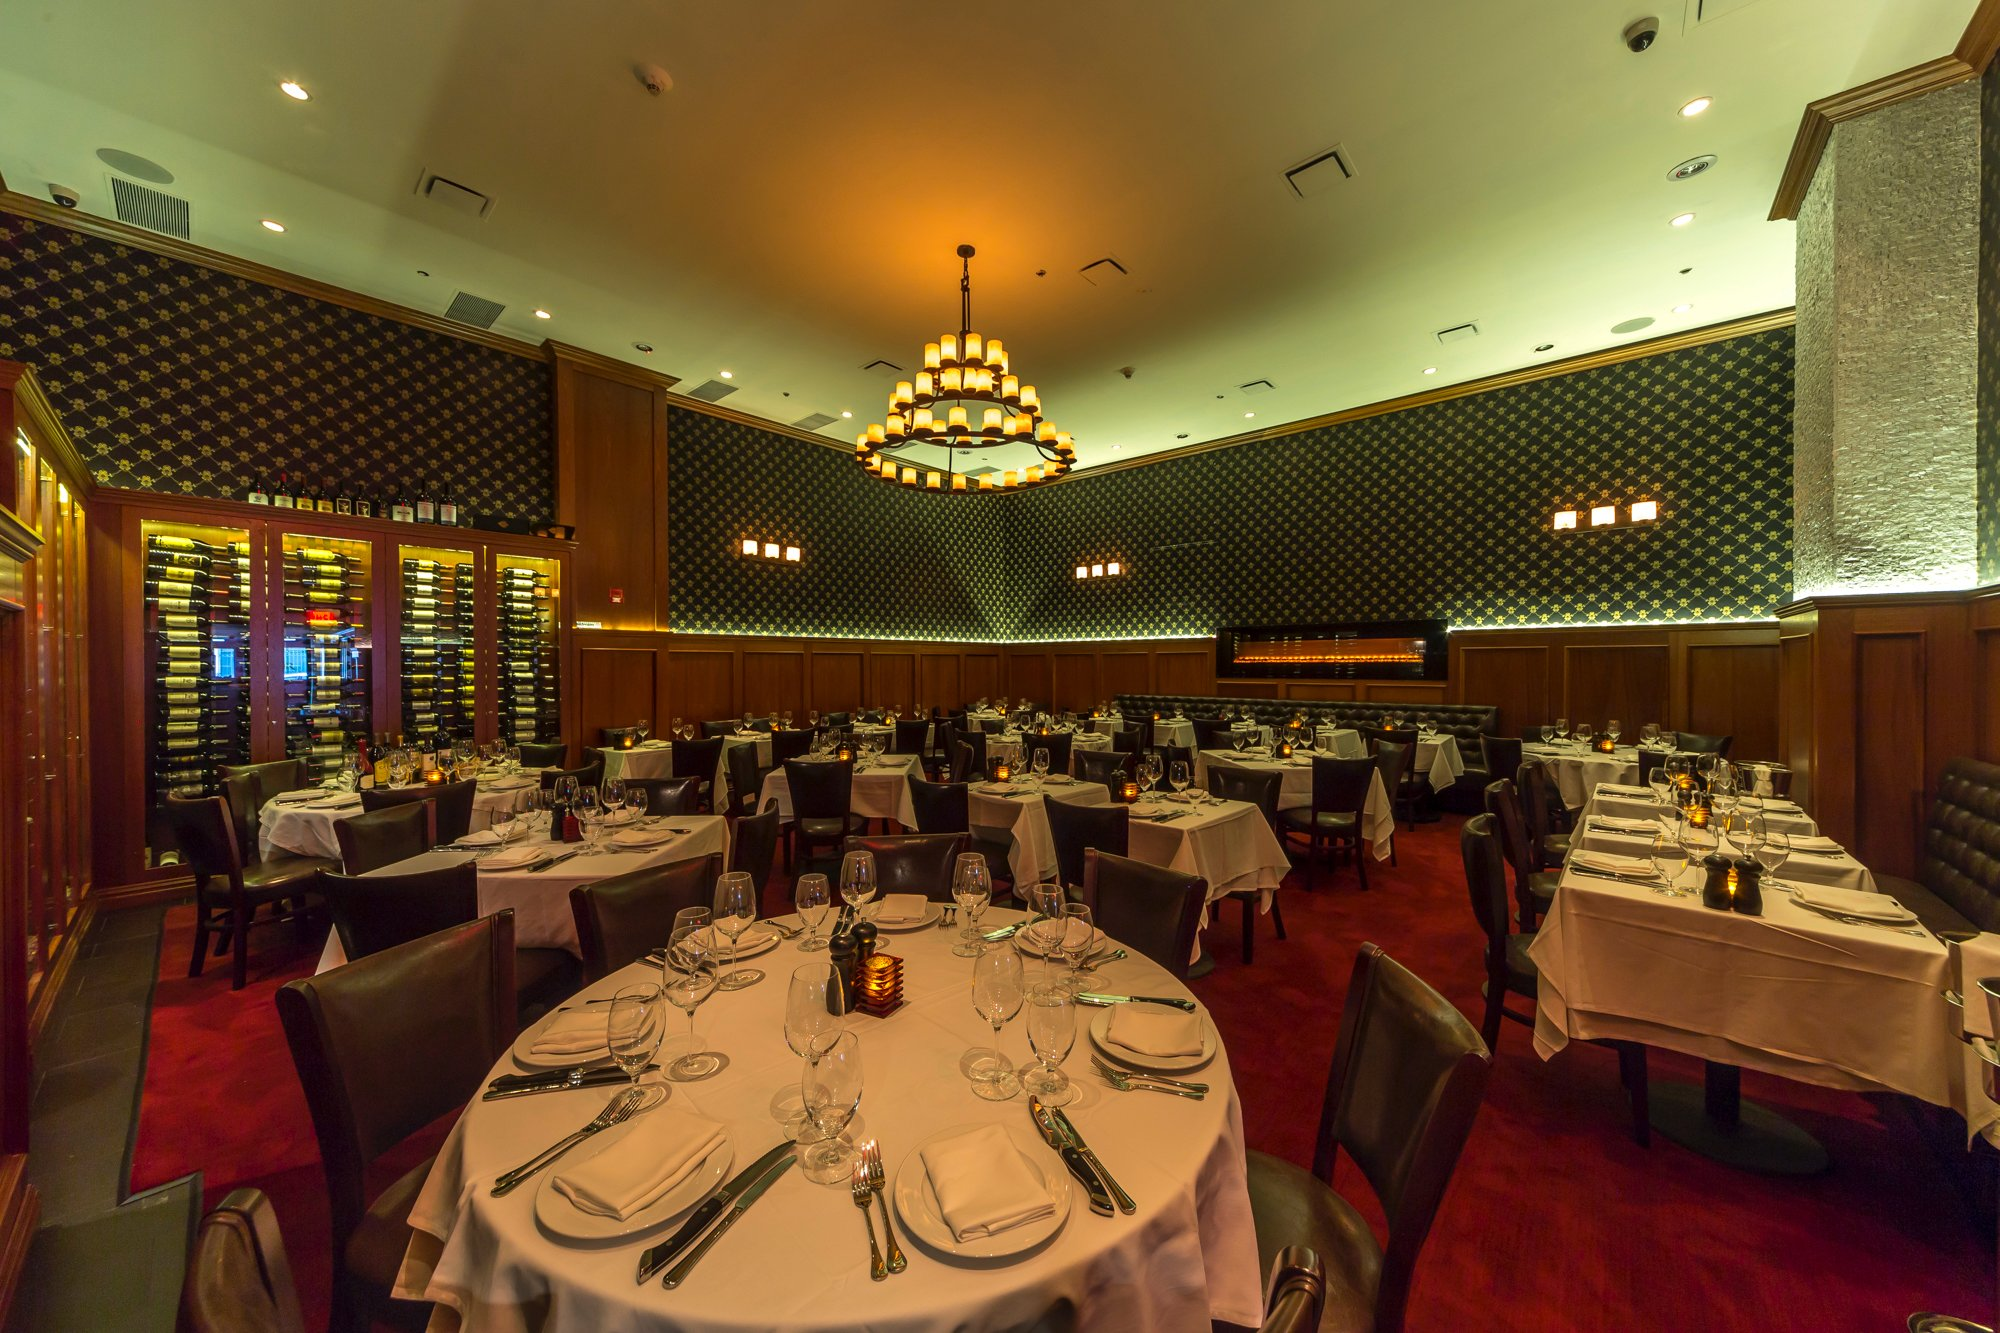 The 10 Best Restaurants Near The Morgan Library & Museum